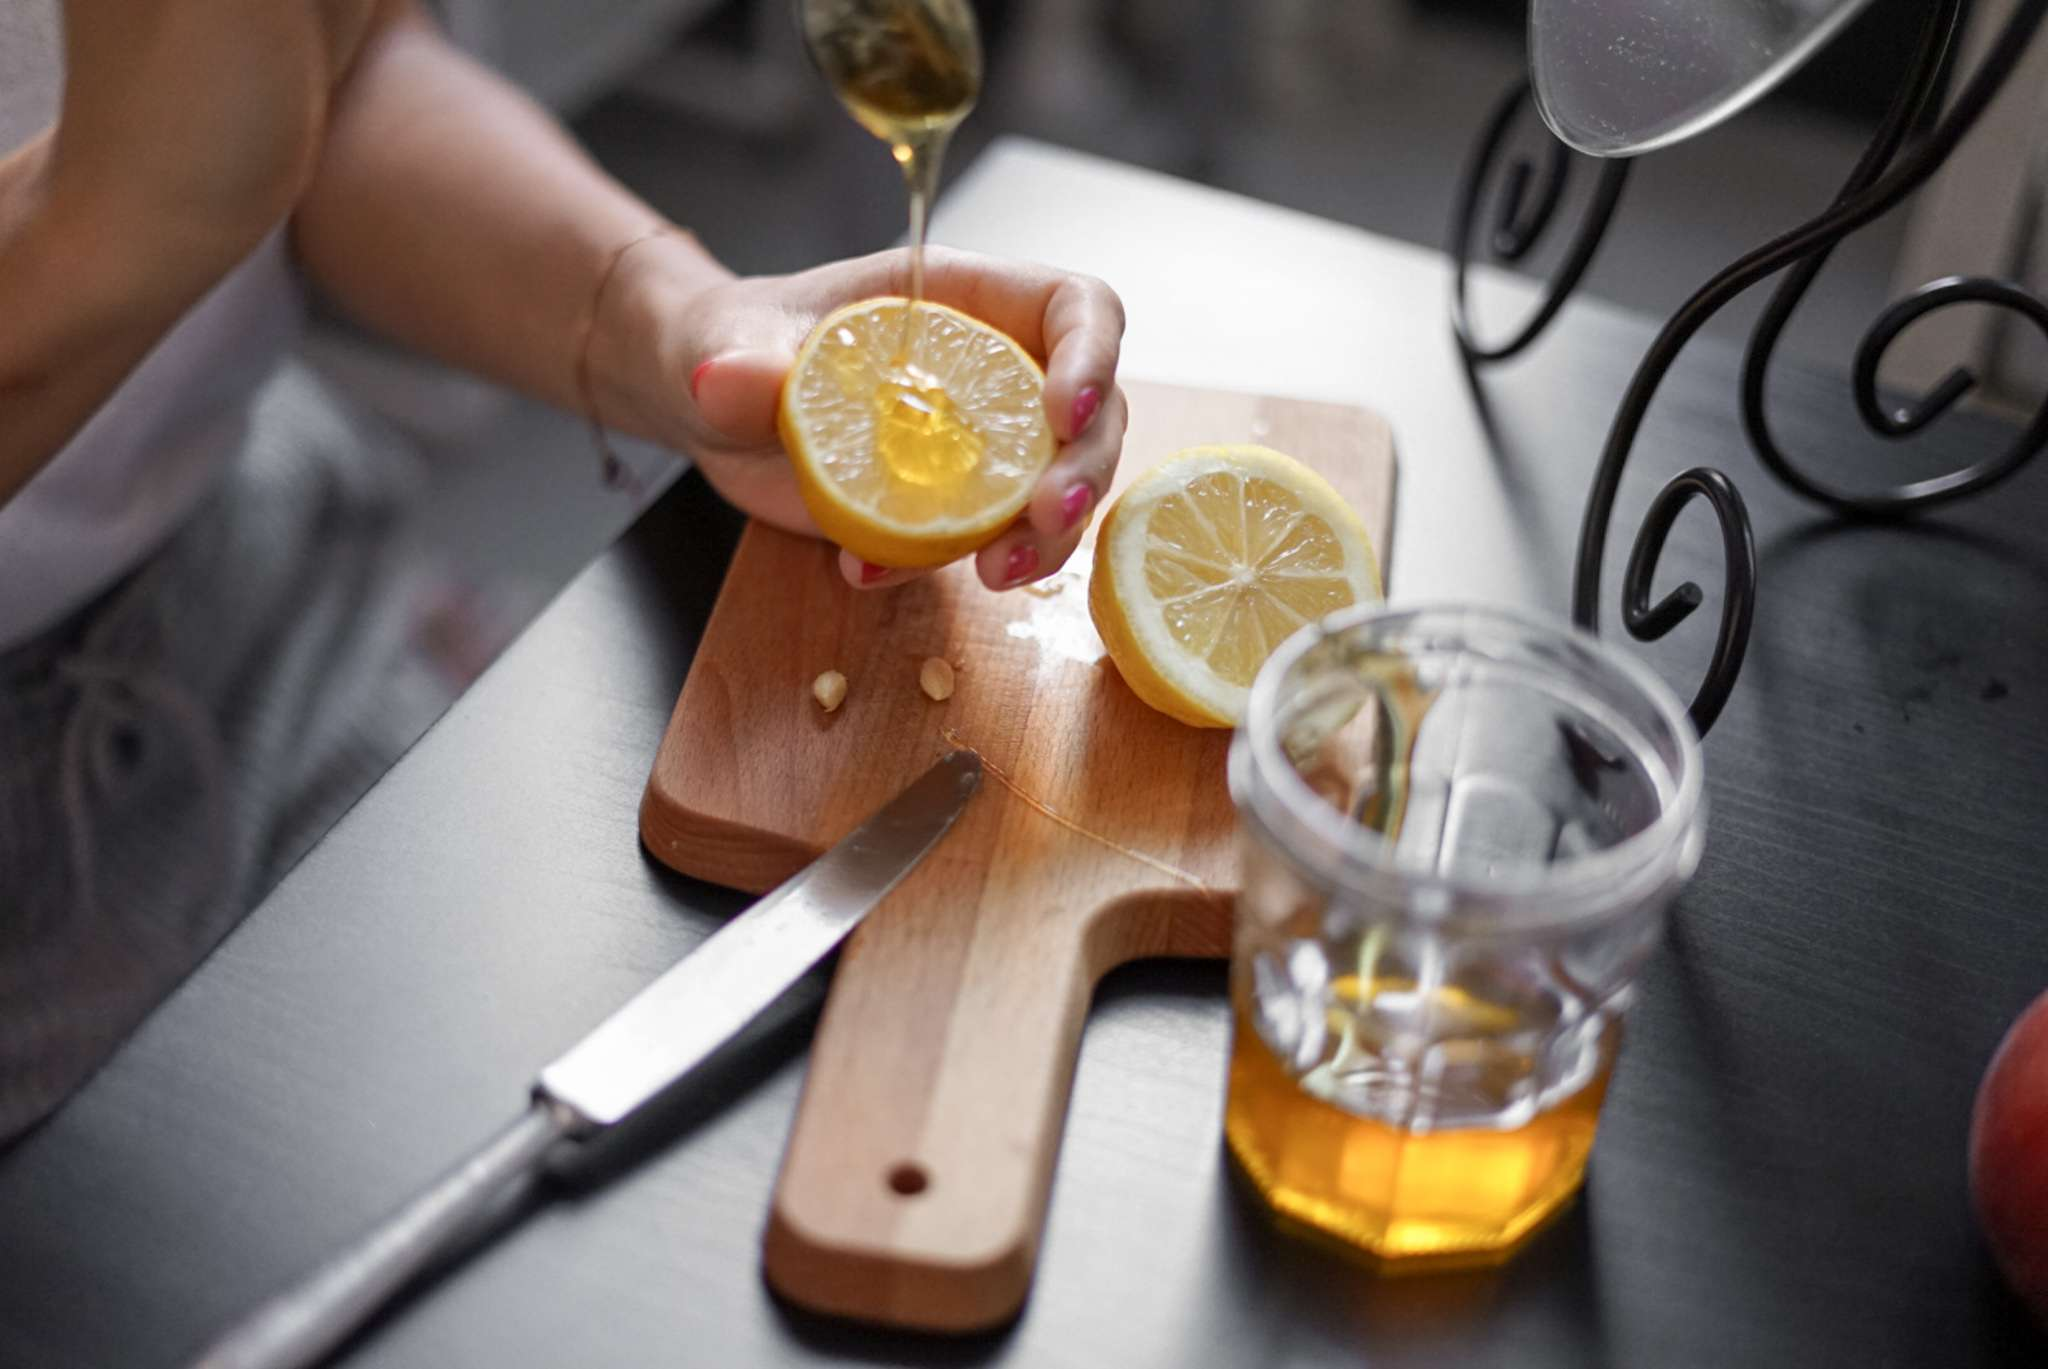 woman drizzles honey over cut lemon on cutting board for natural beauty treatment